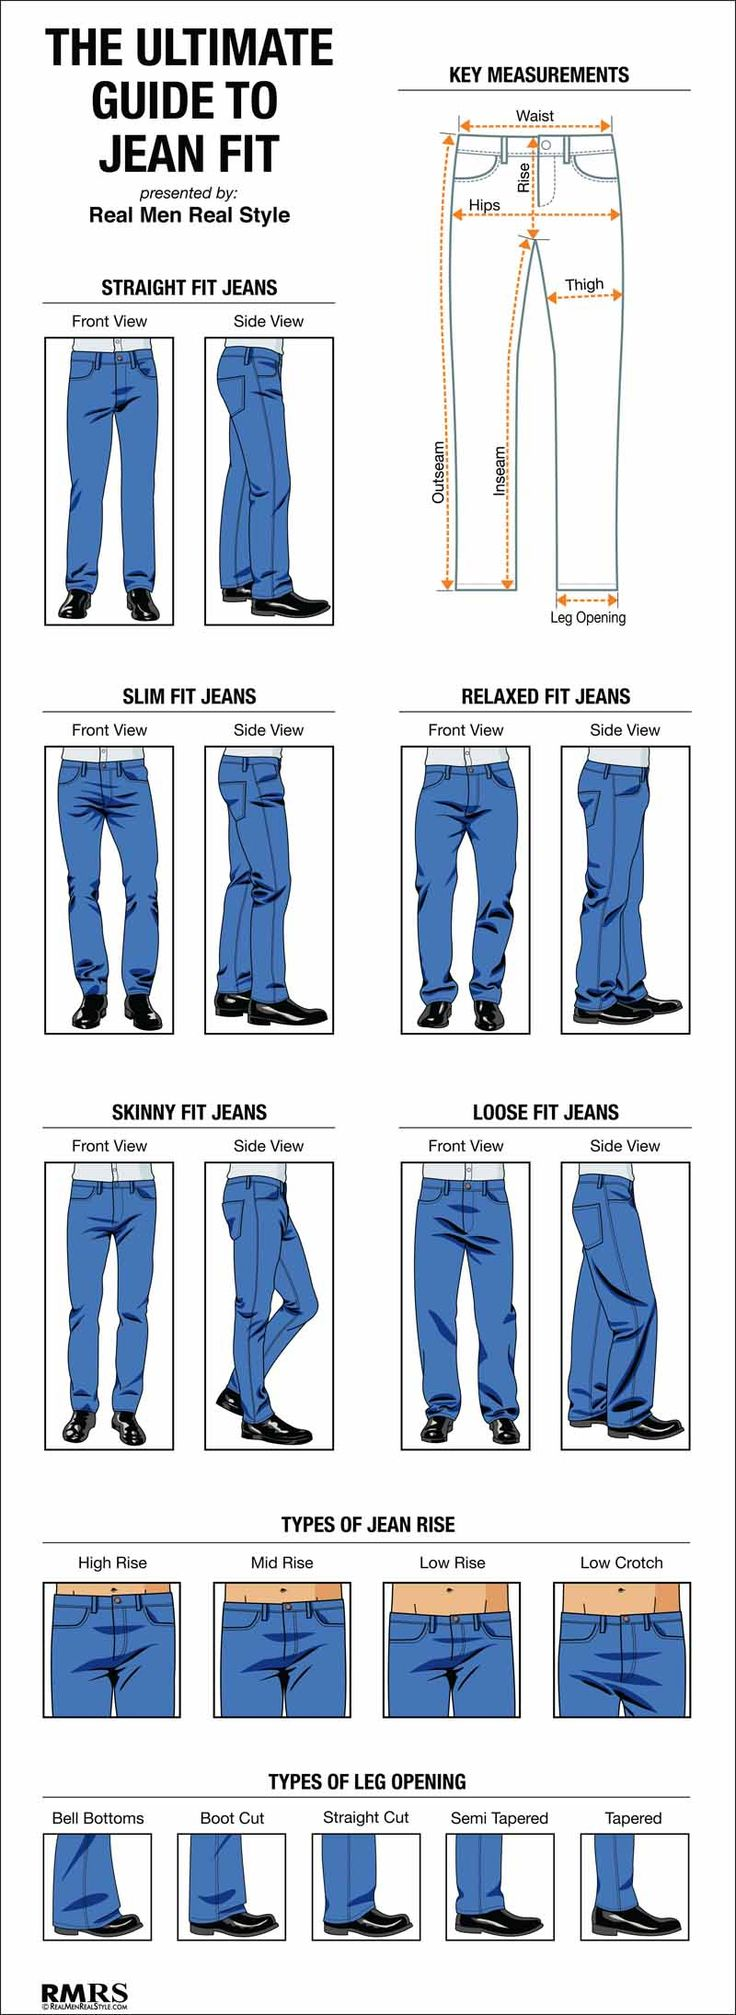 The ultimate guide to getting perfect fitting jeans